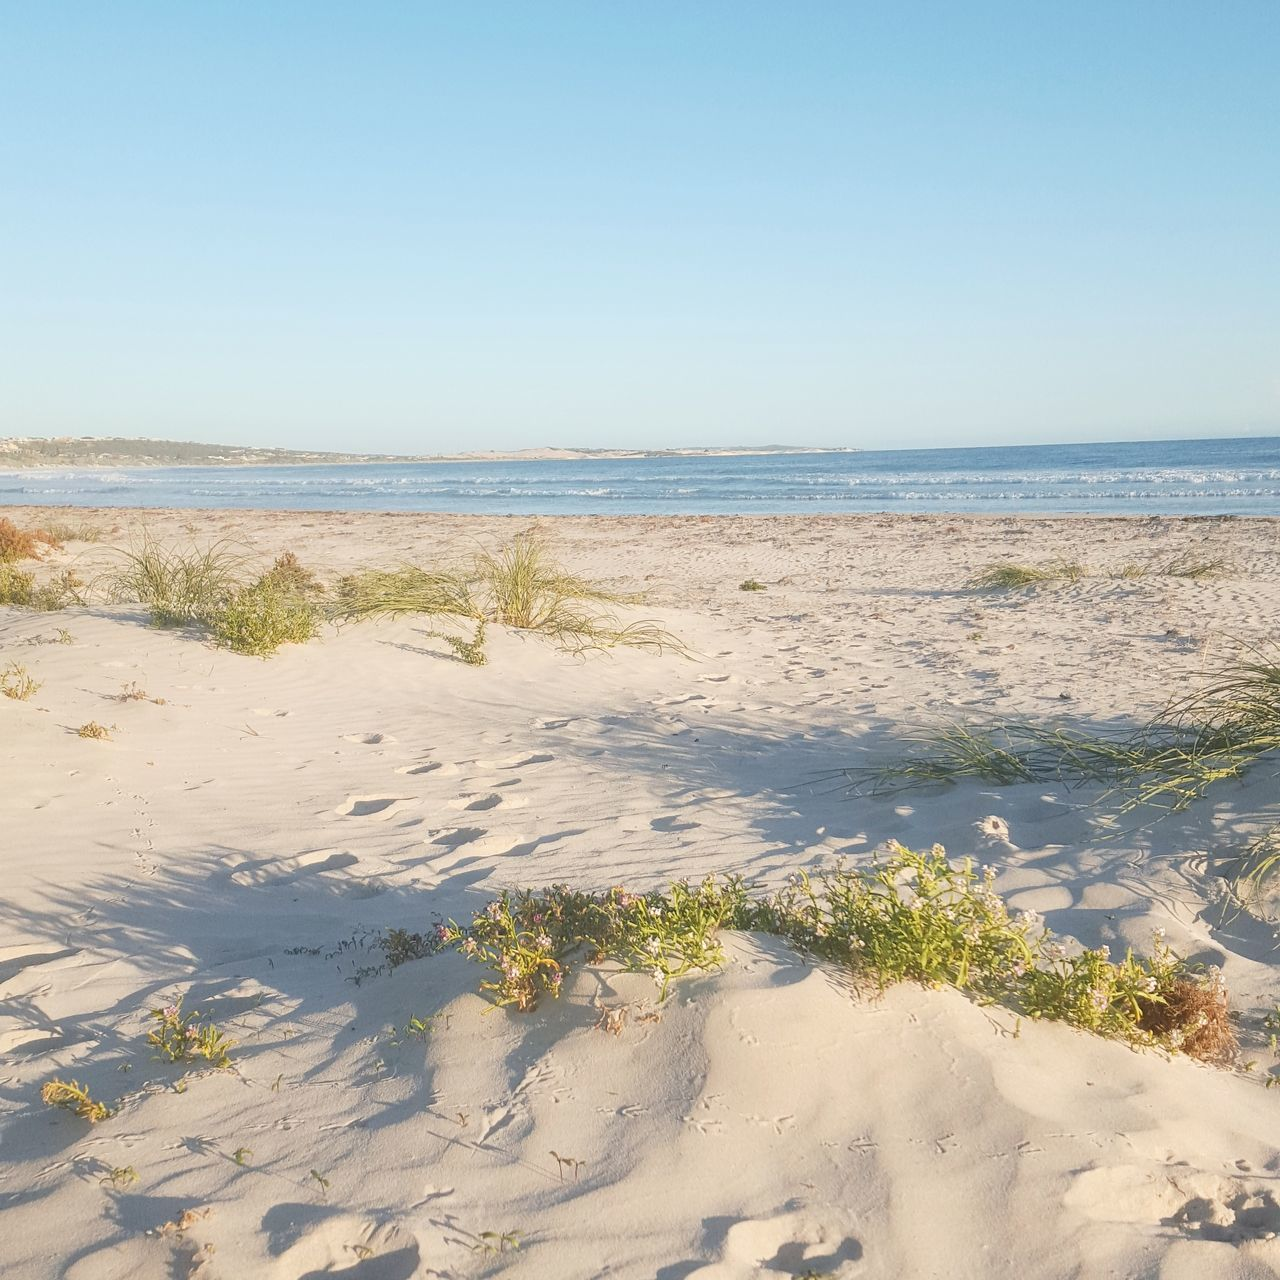 sea, beach, water, sand, nature, horizon over water, scenics, beauty in nature, tranquility, tranquil scene, shore, outdoors, day, clear sky, sunlight, no people, sky